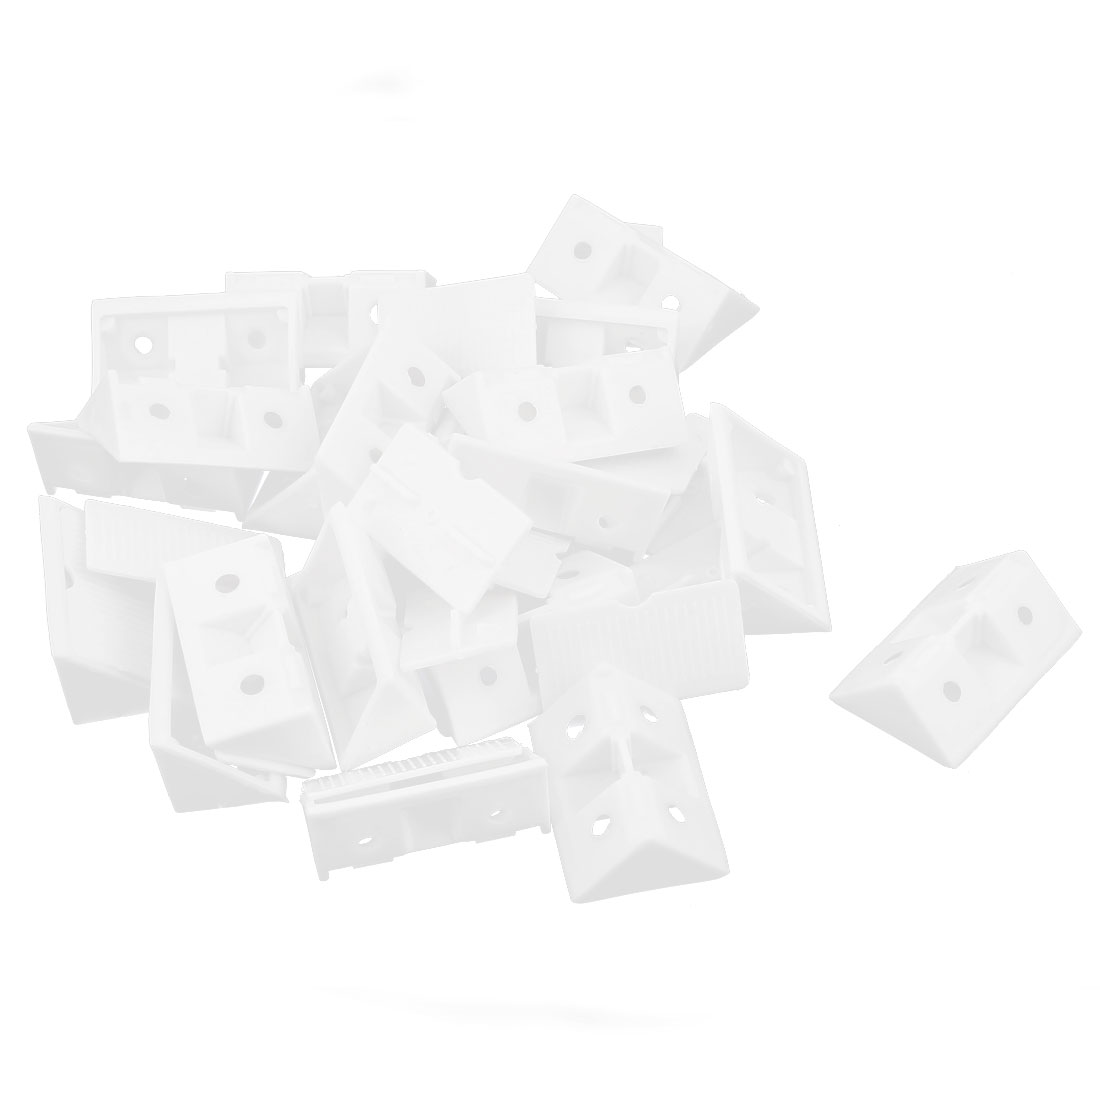 Shelf Door 42mm x 28mm x 15mm 4 Holes Plastic Angle Brackets White 20 Pcs